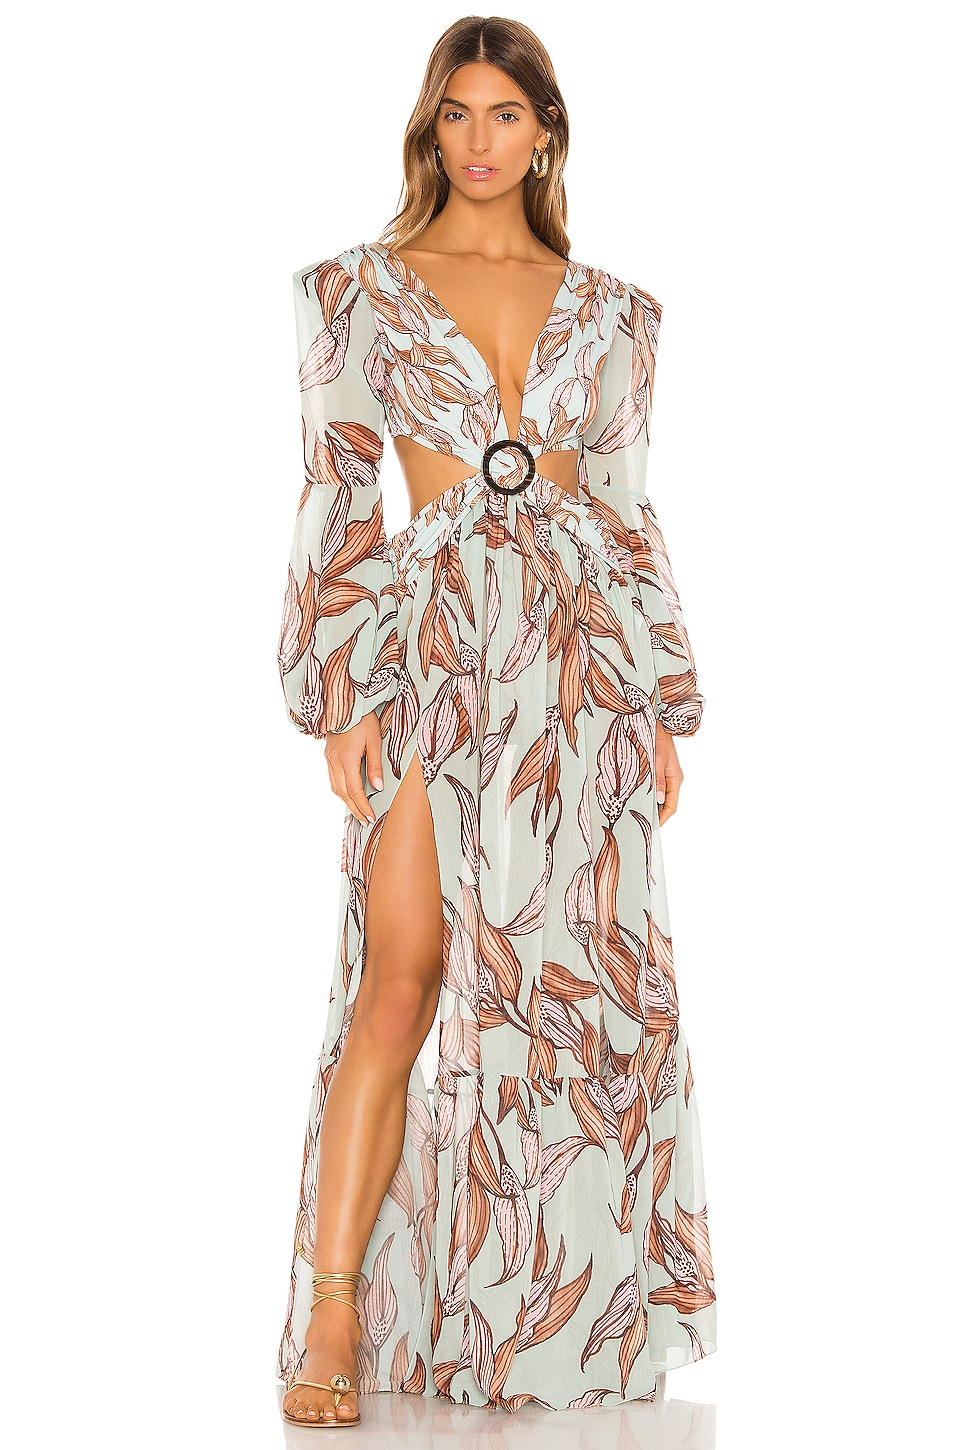 PatBO Printed Cutout Dress in Peace Lily